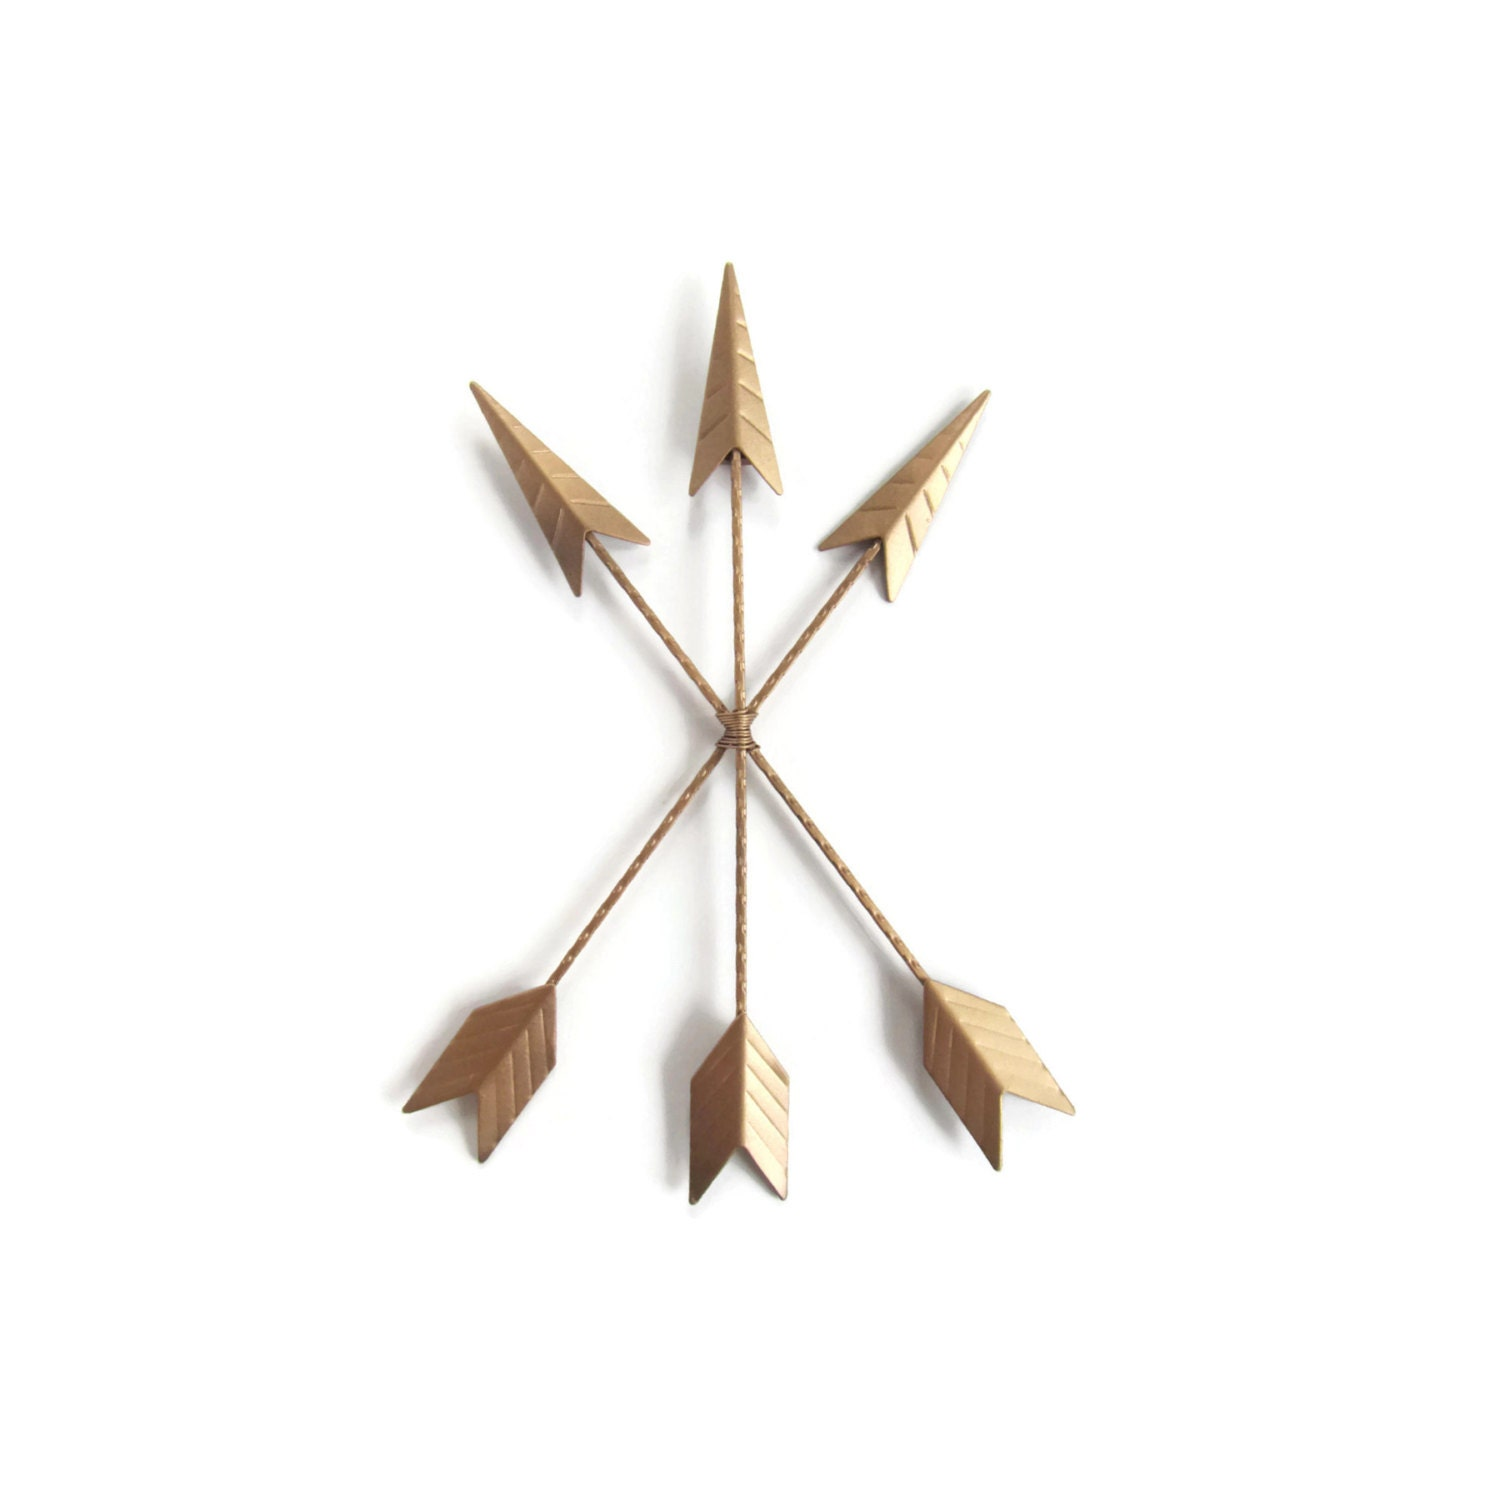 Gold Arrow Wall Decor : Gold arrow wall hanging art home decor